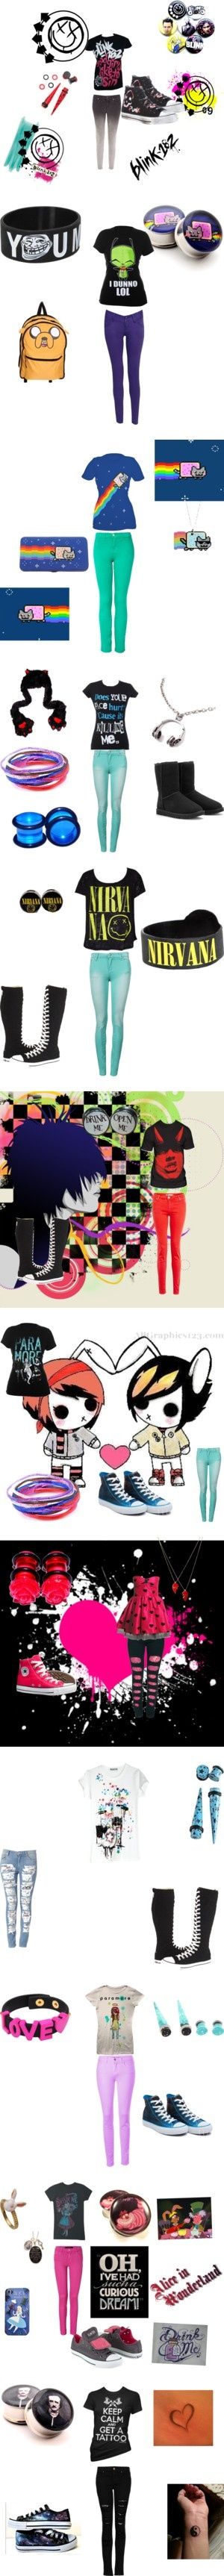 """My Sets"" by piercetheveil98 on Polyvore"